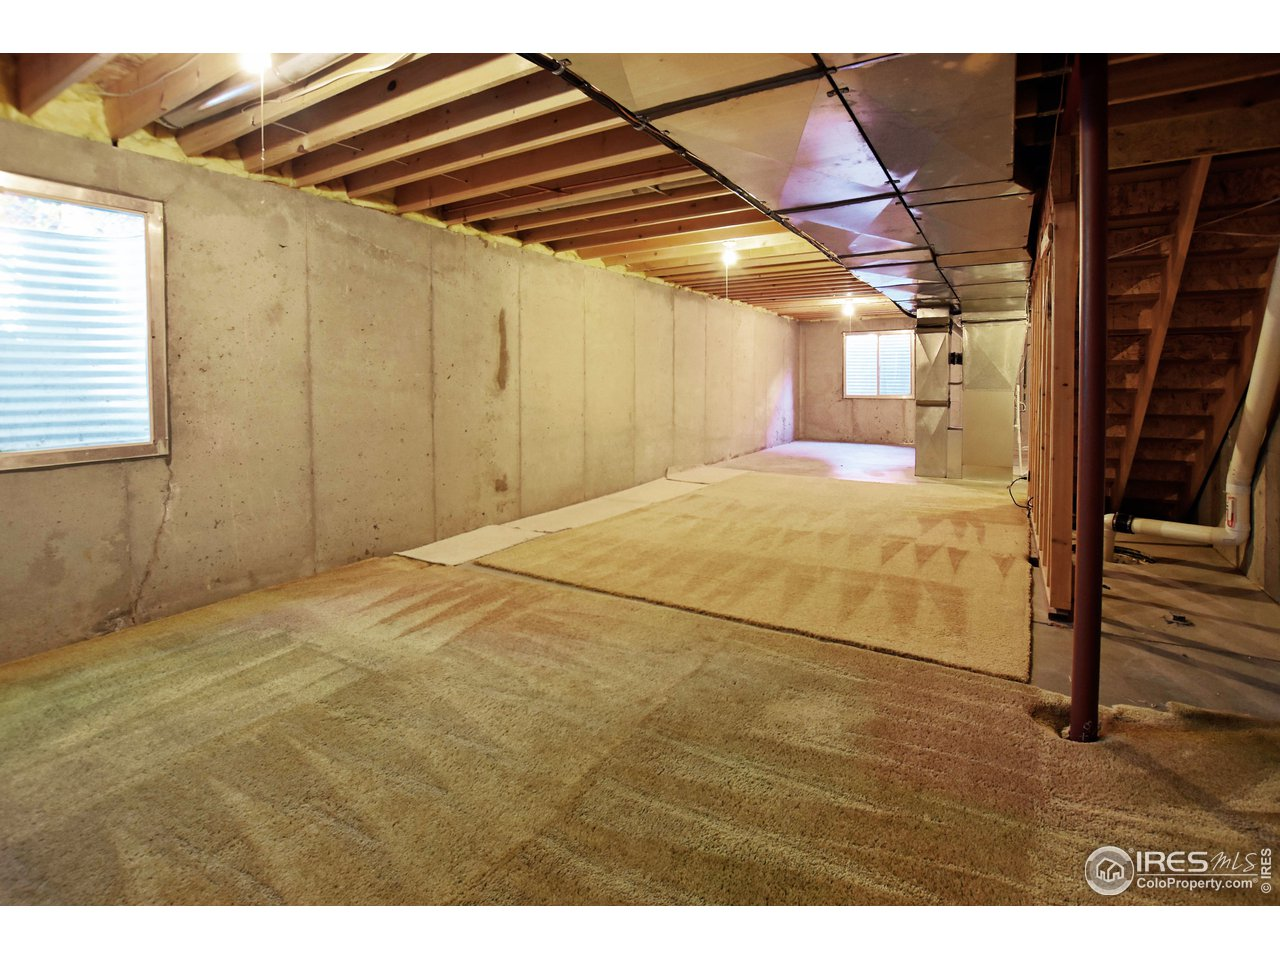 unfinished basement to expand